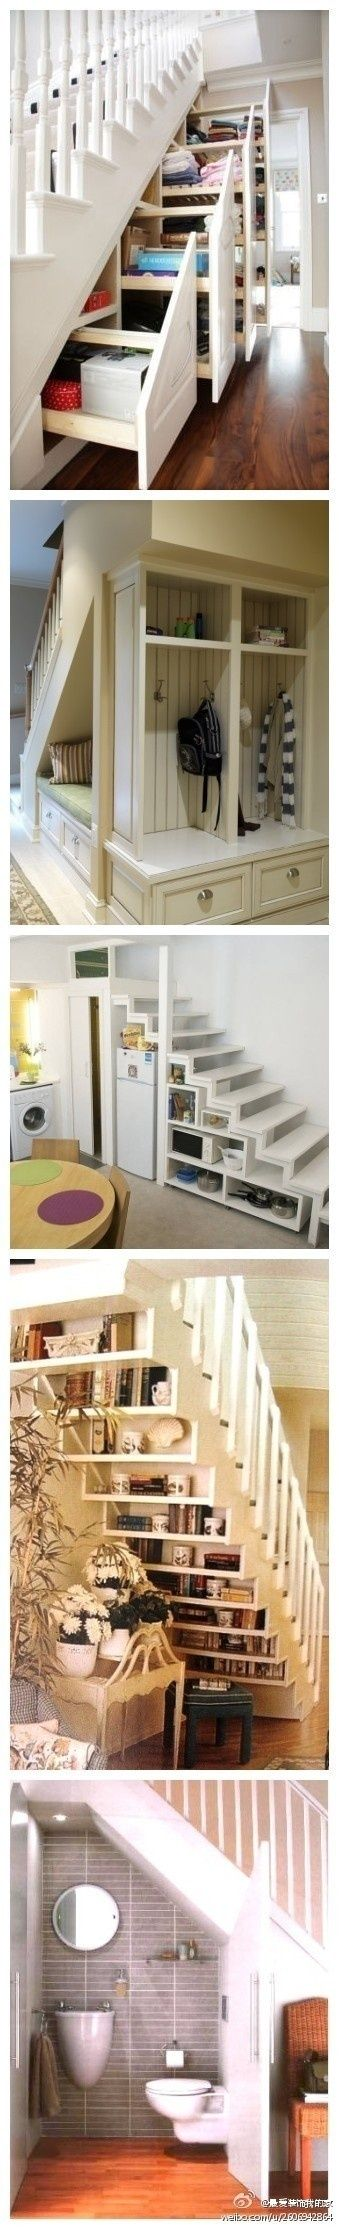 Sweet ideas for the Stairs!